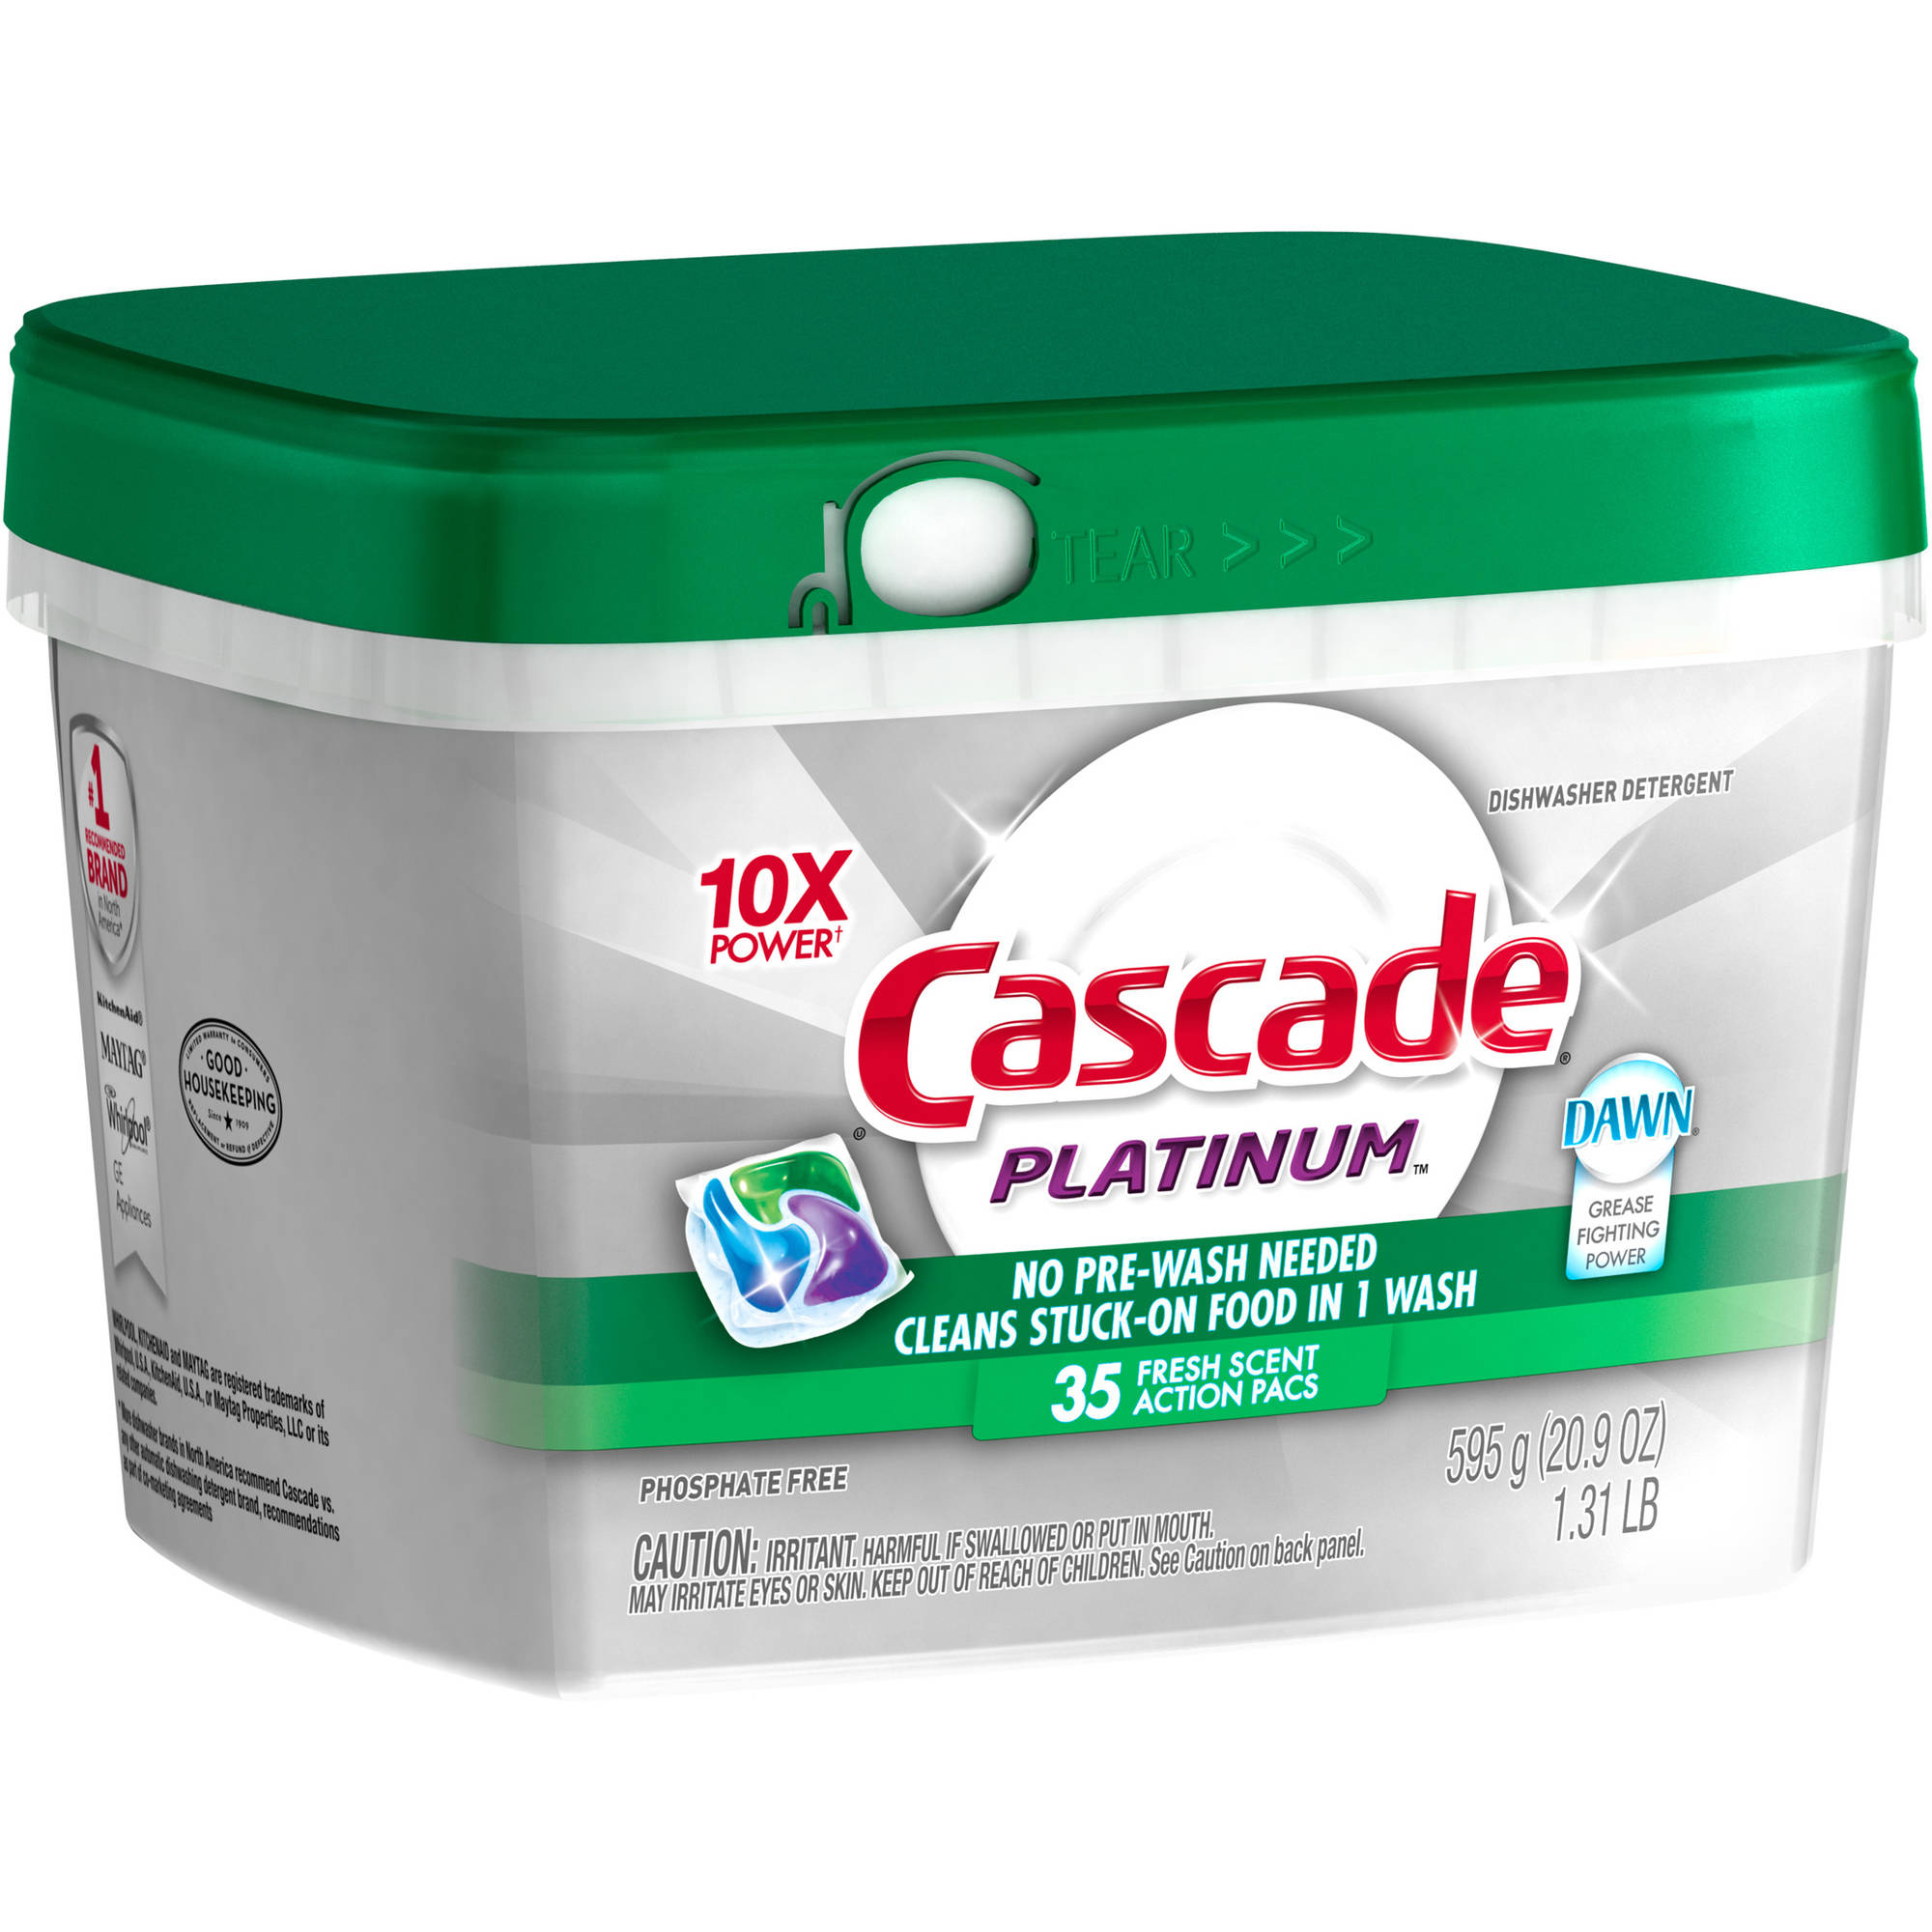 Cascade Platinum ActionPacs Dishwasher Detergent Fresh Scent (choose your size)